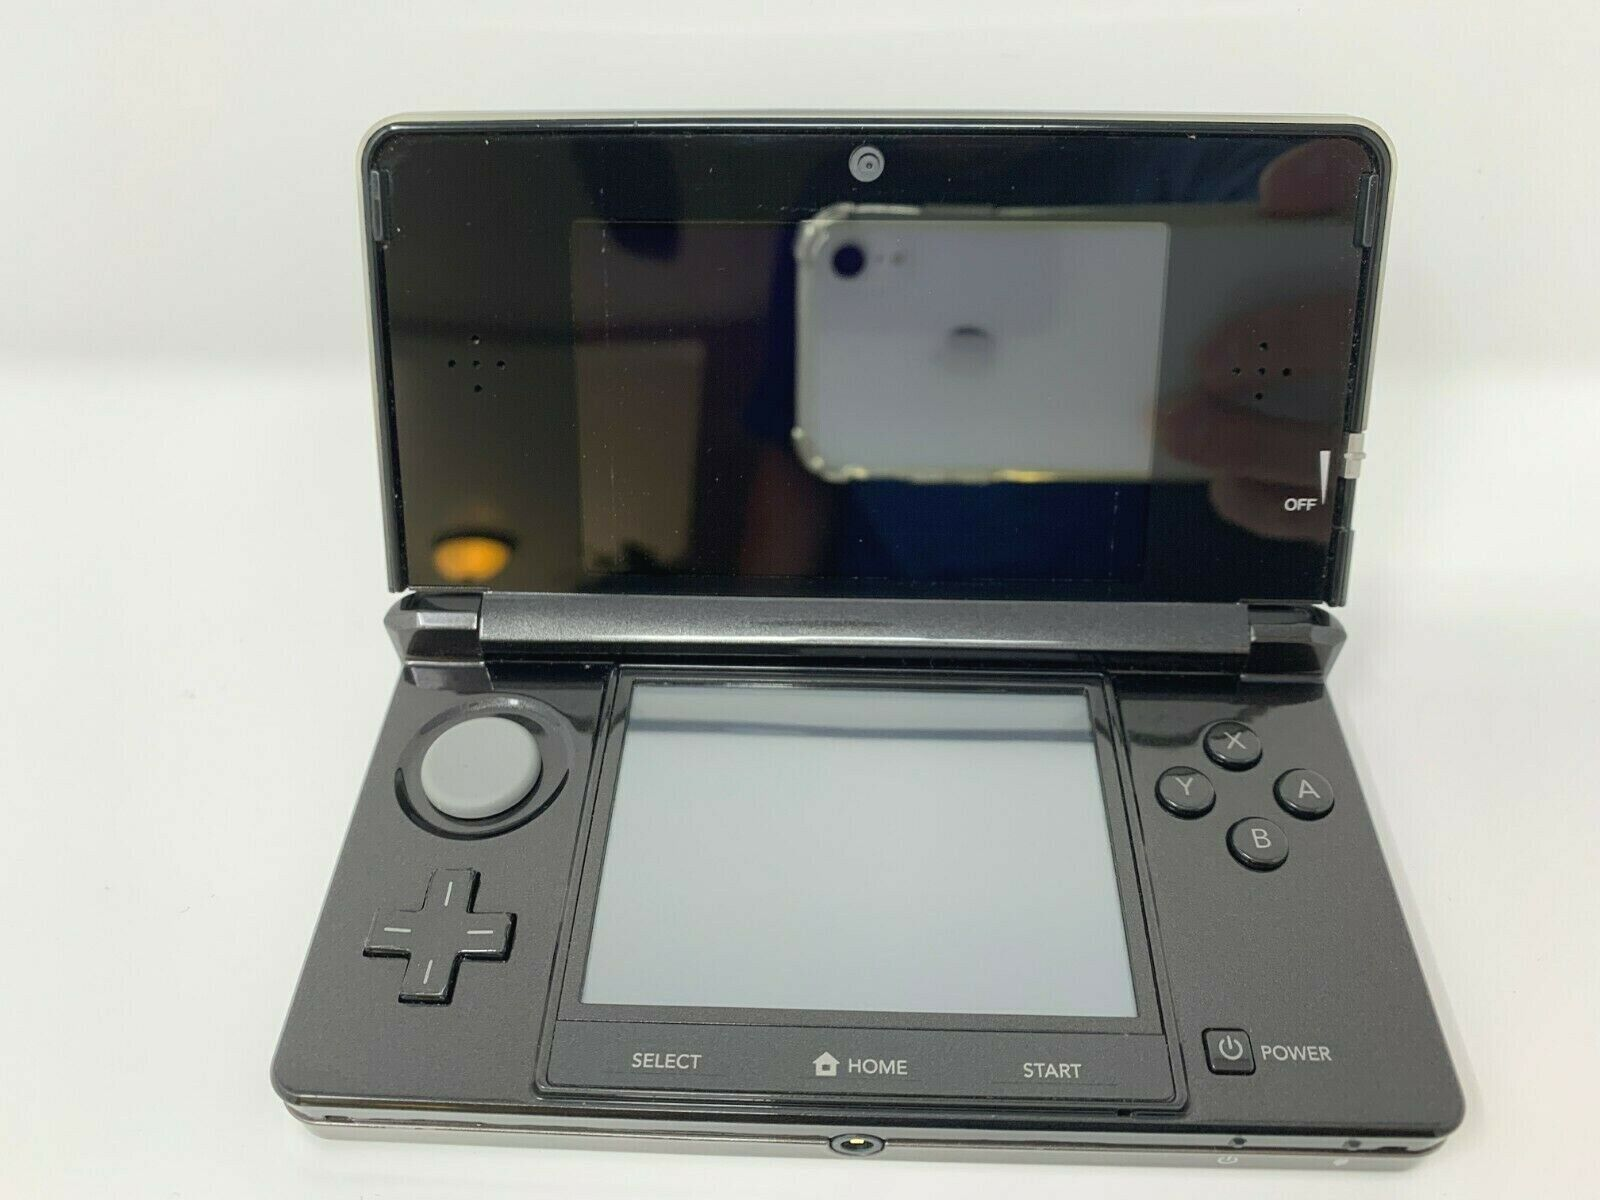 Nintendo 3DS - Cosmo Black Includes 1 Game, USB Charger 16GB SD Card  - $55.00